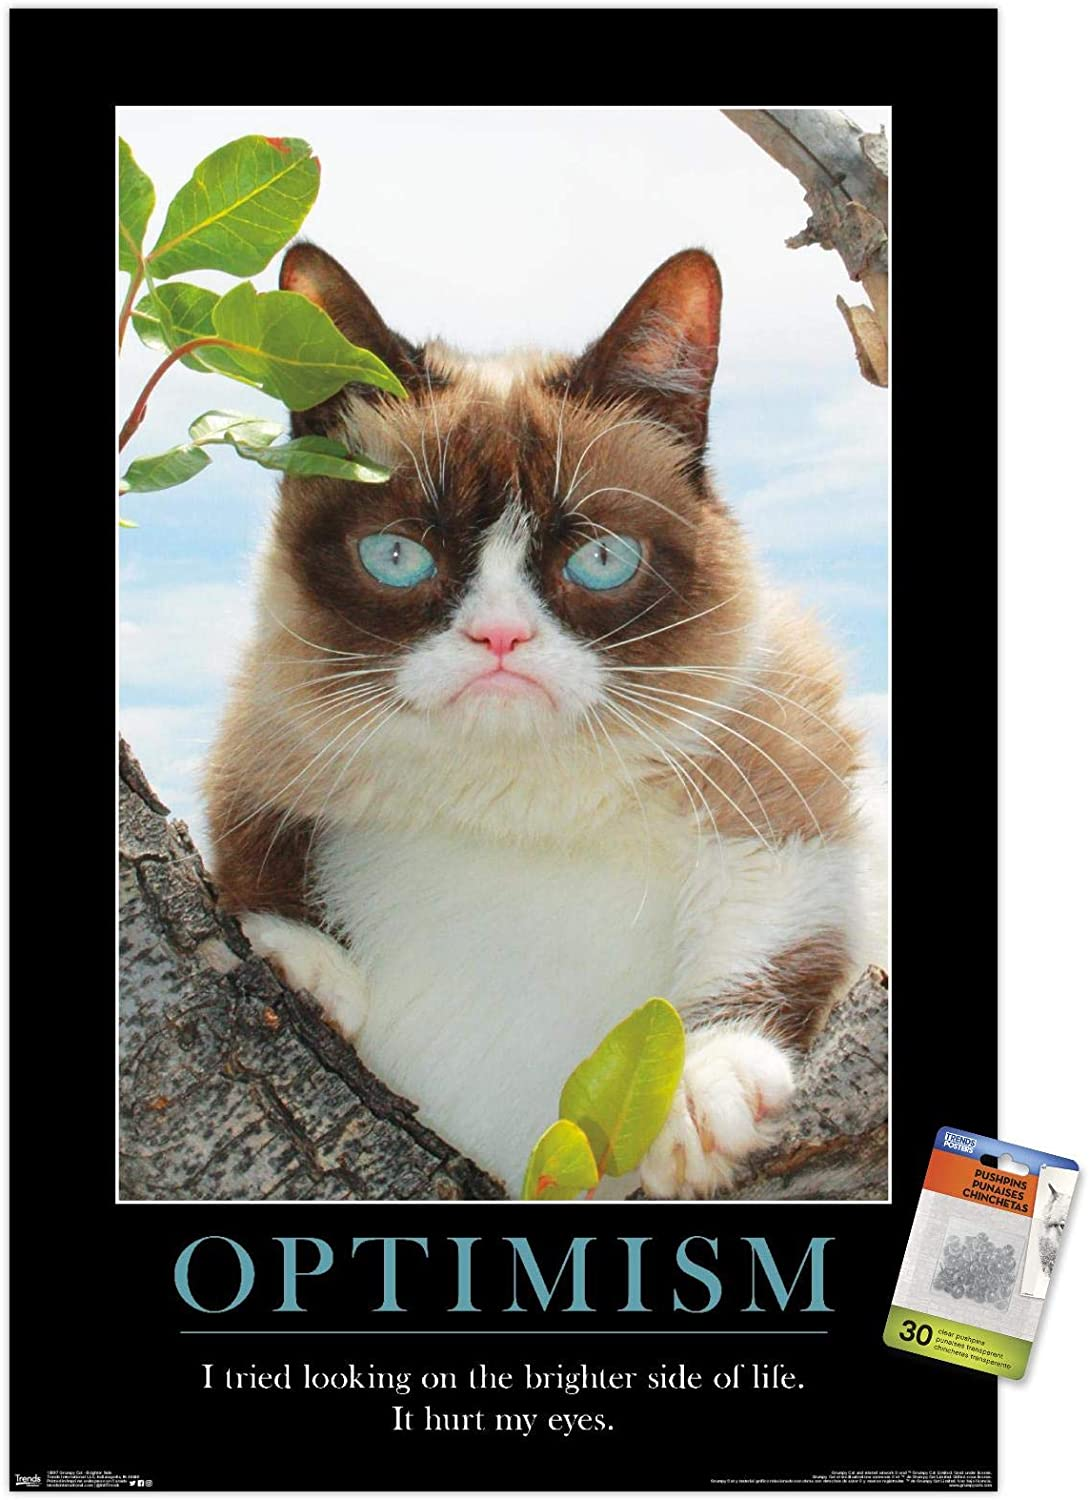 Grumpy Cat - The Brighter Side Wall Poster with Push Pins